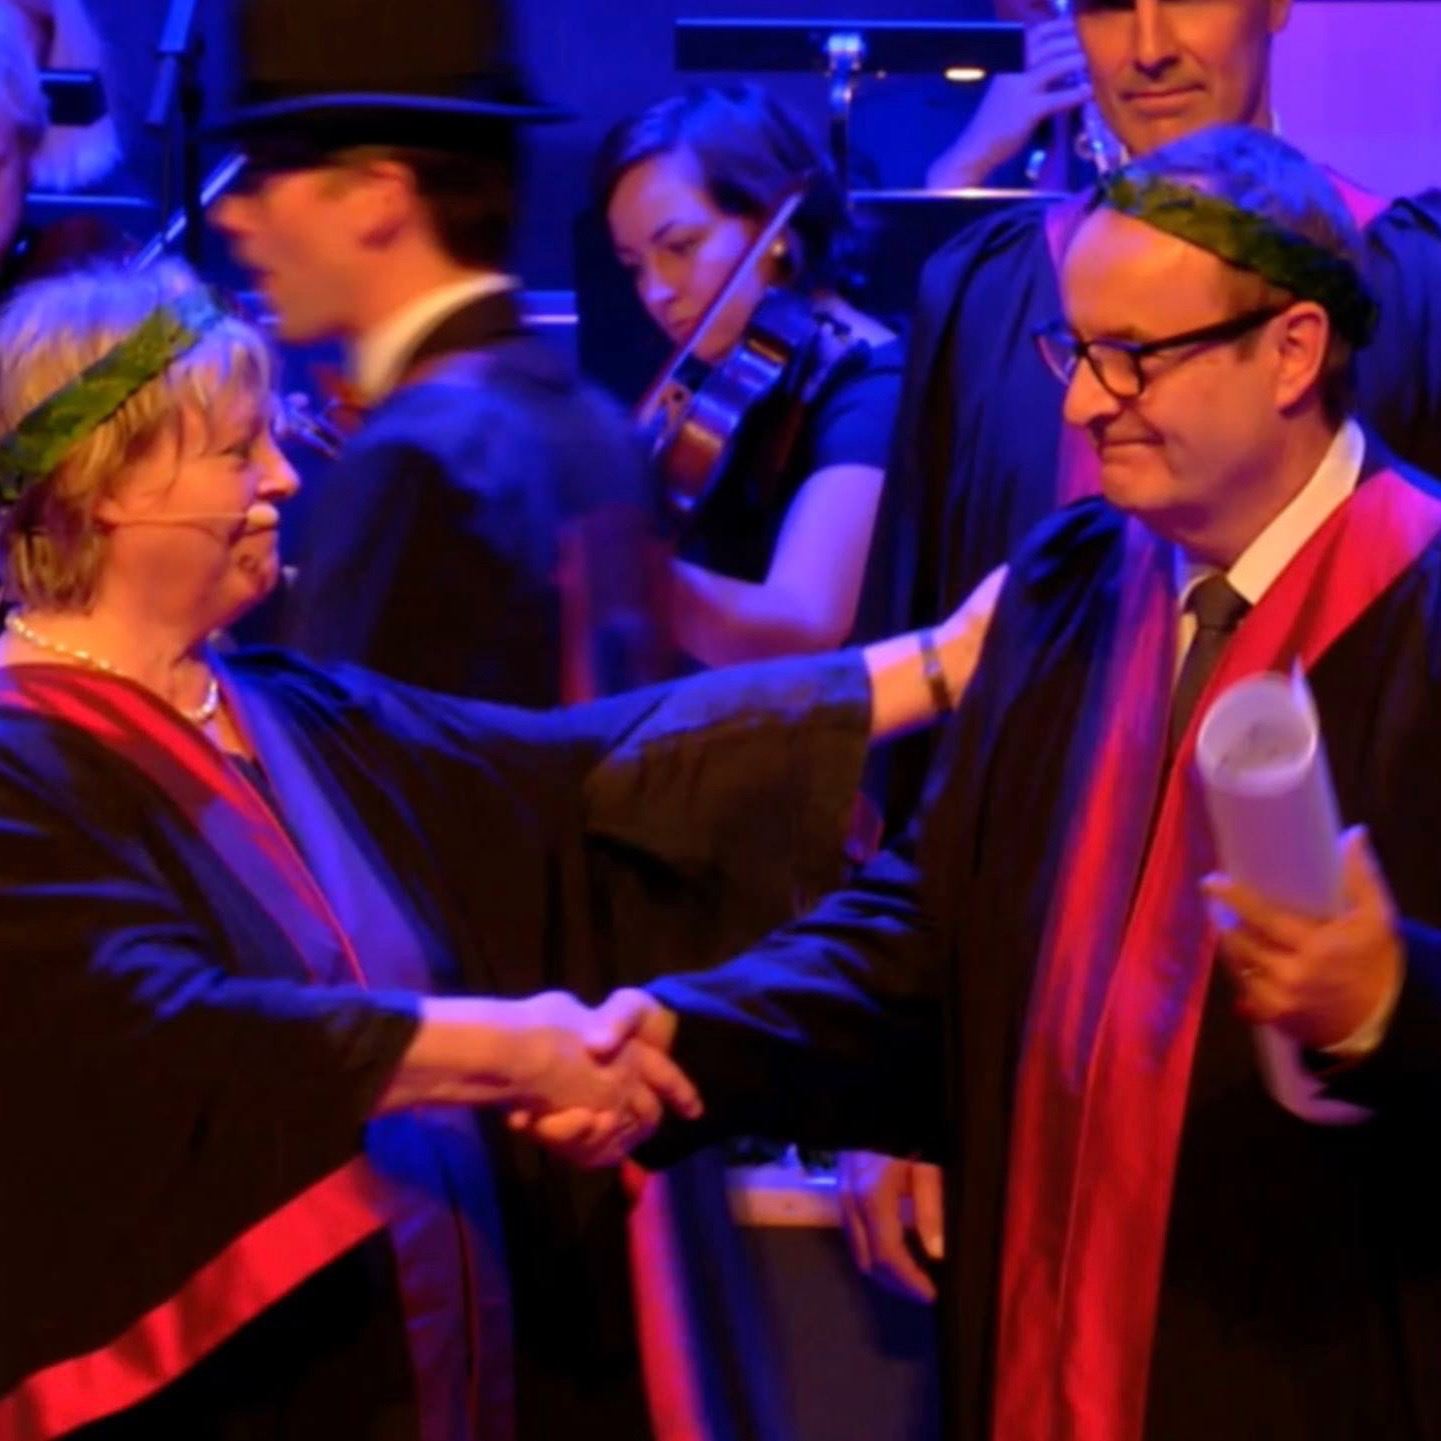 John Storan honorary doctor at Culture and Society